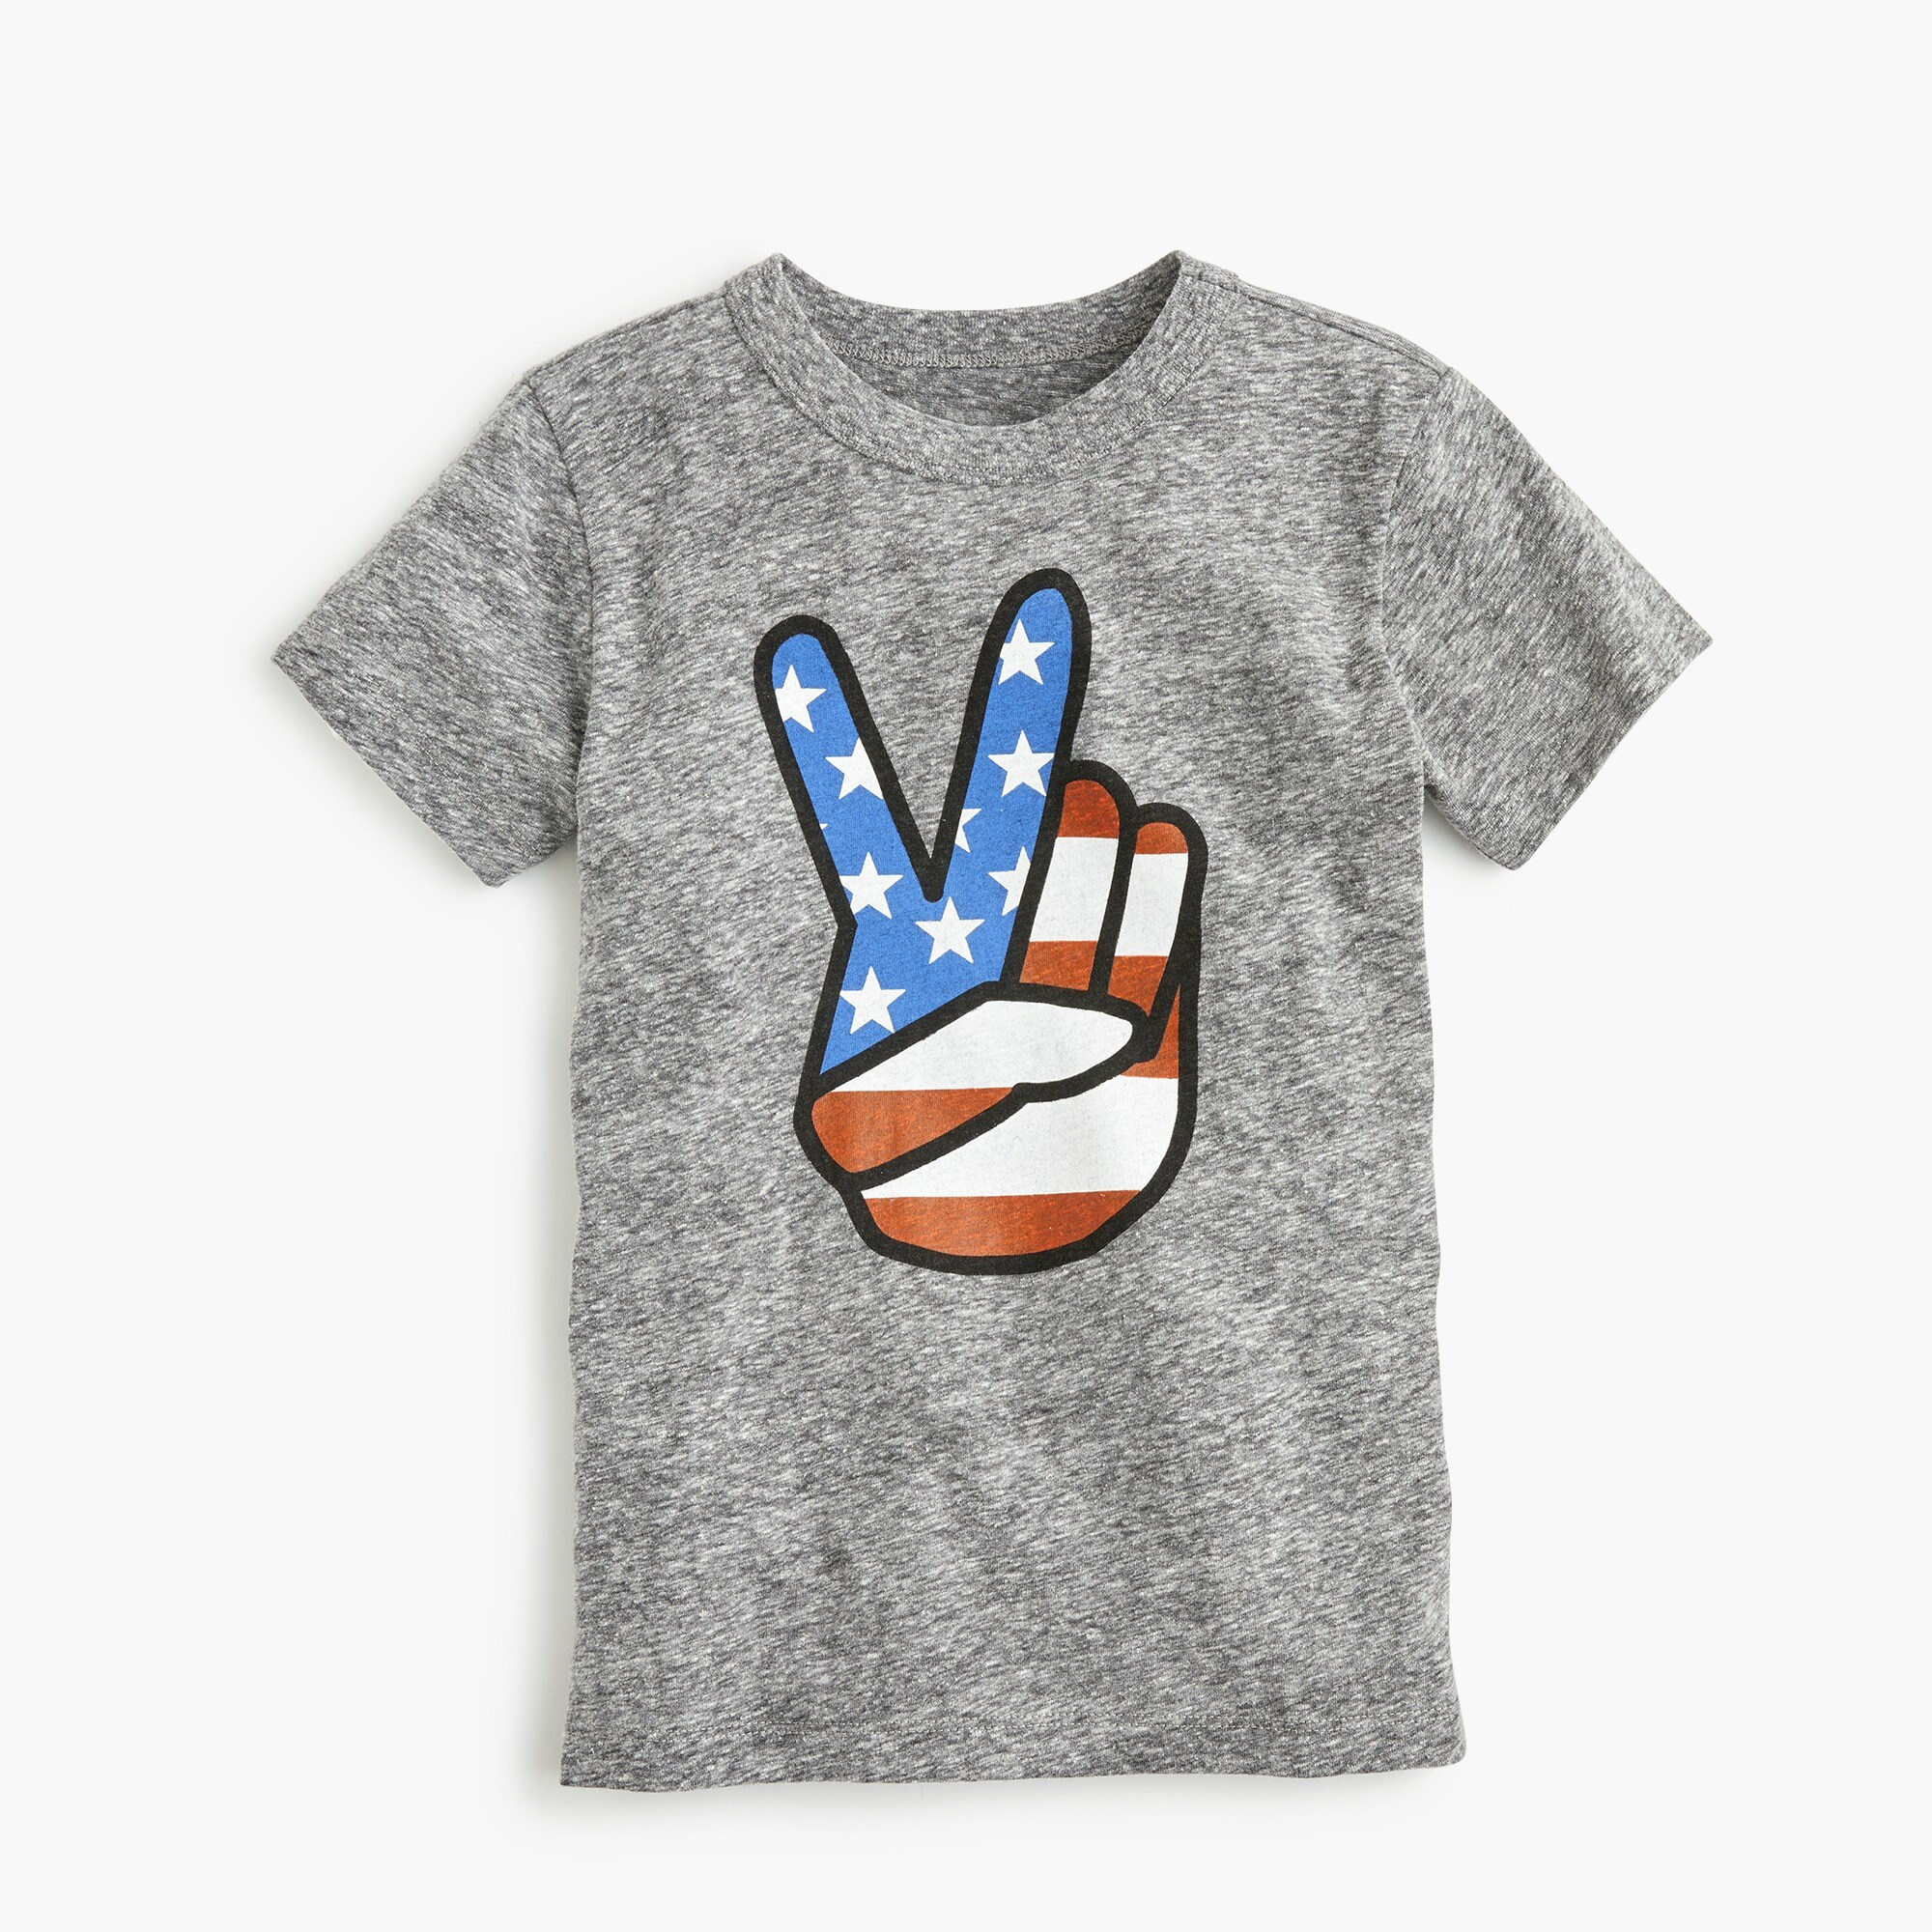 Boys' peace sign T-shirt boy graphics shop c